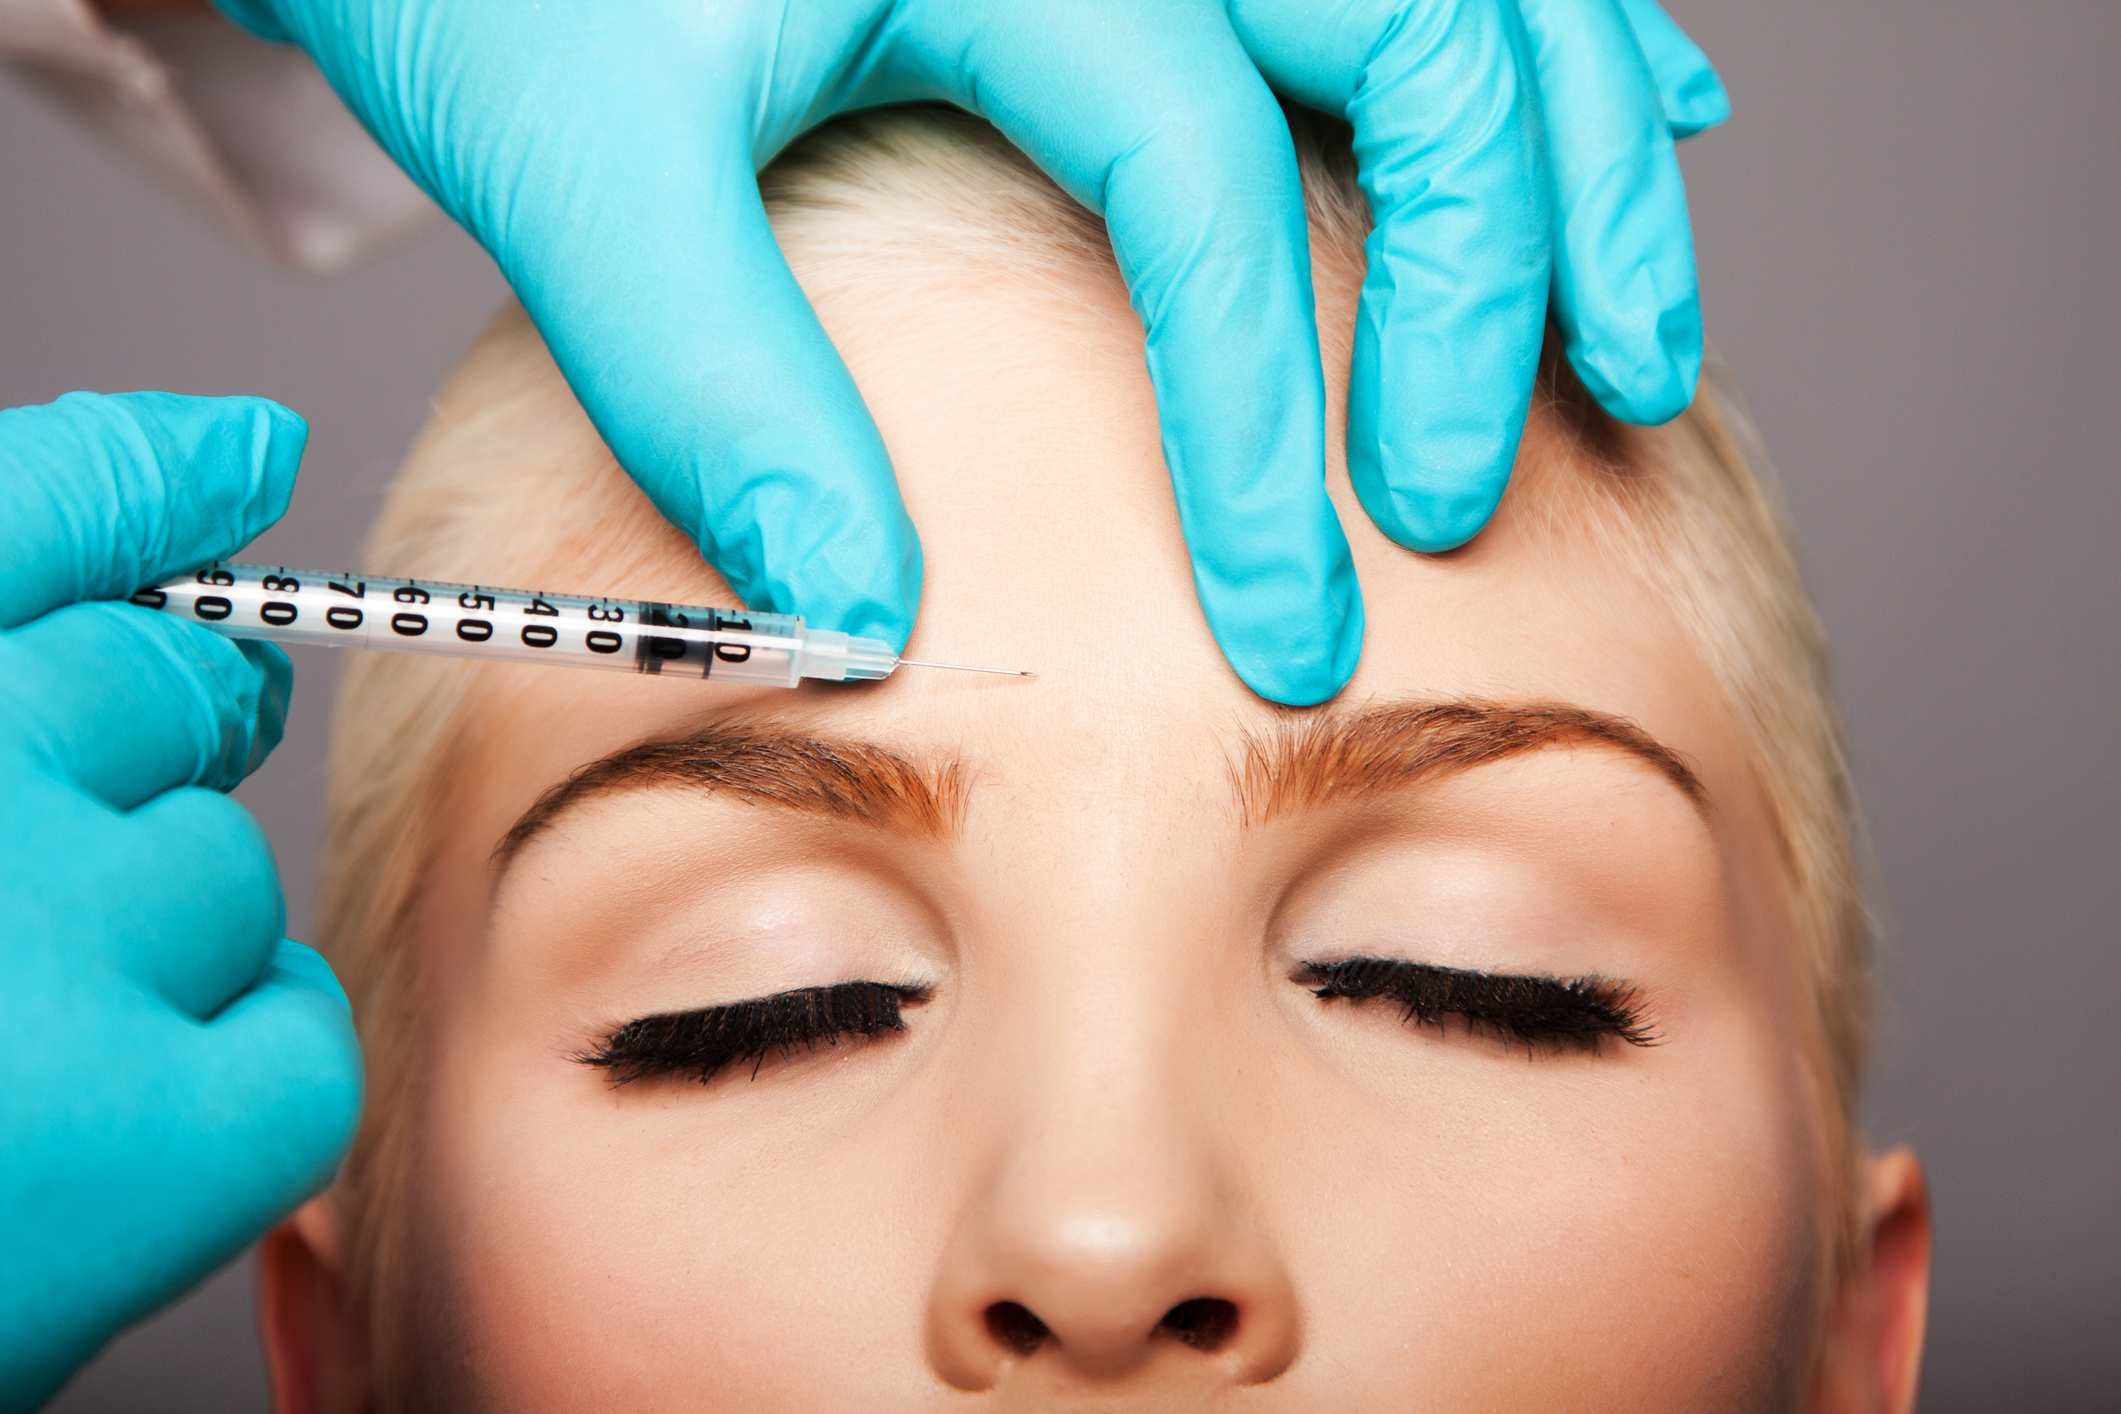 8 Questions To Ask Your Doctor About Botox Injections